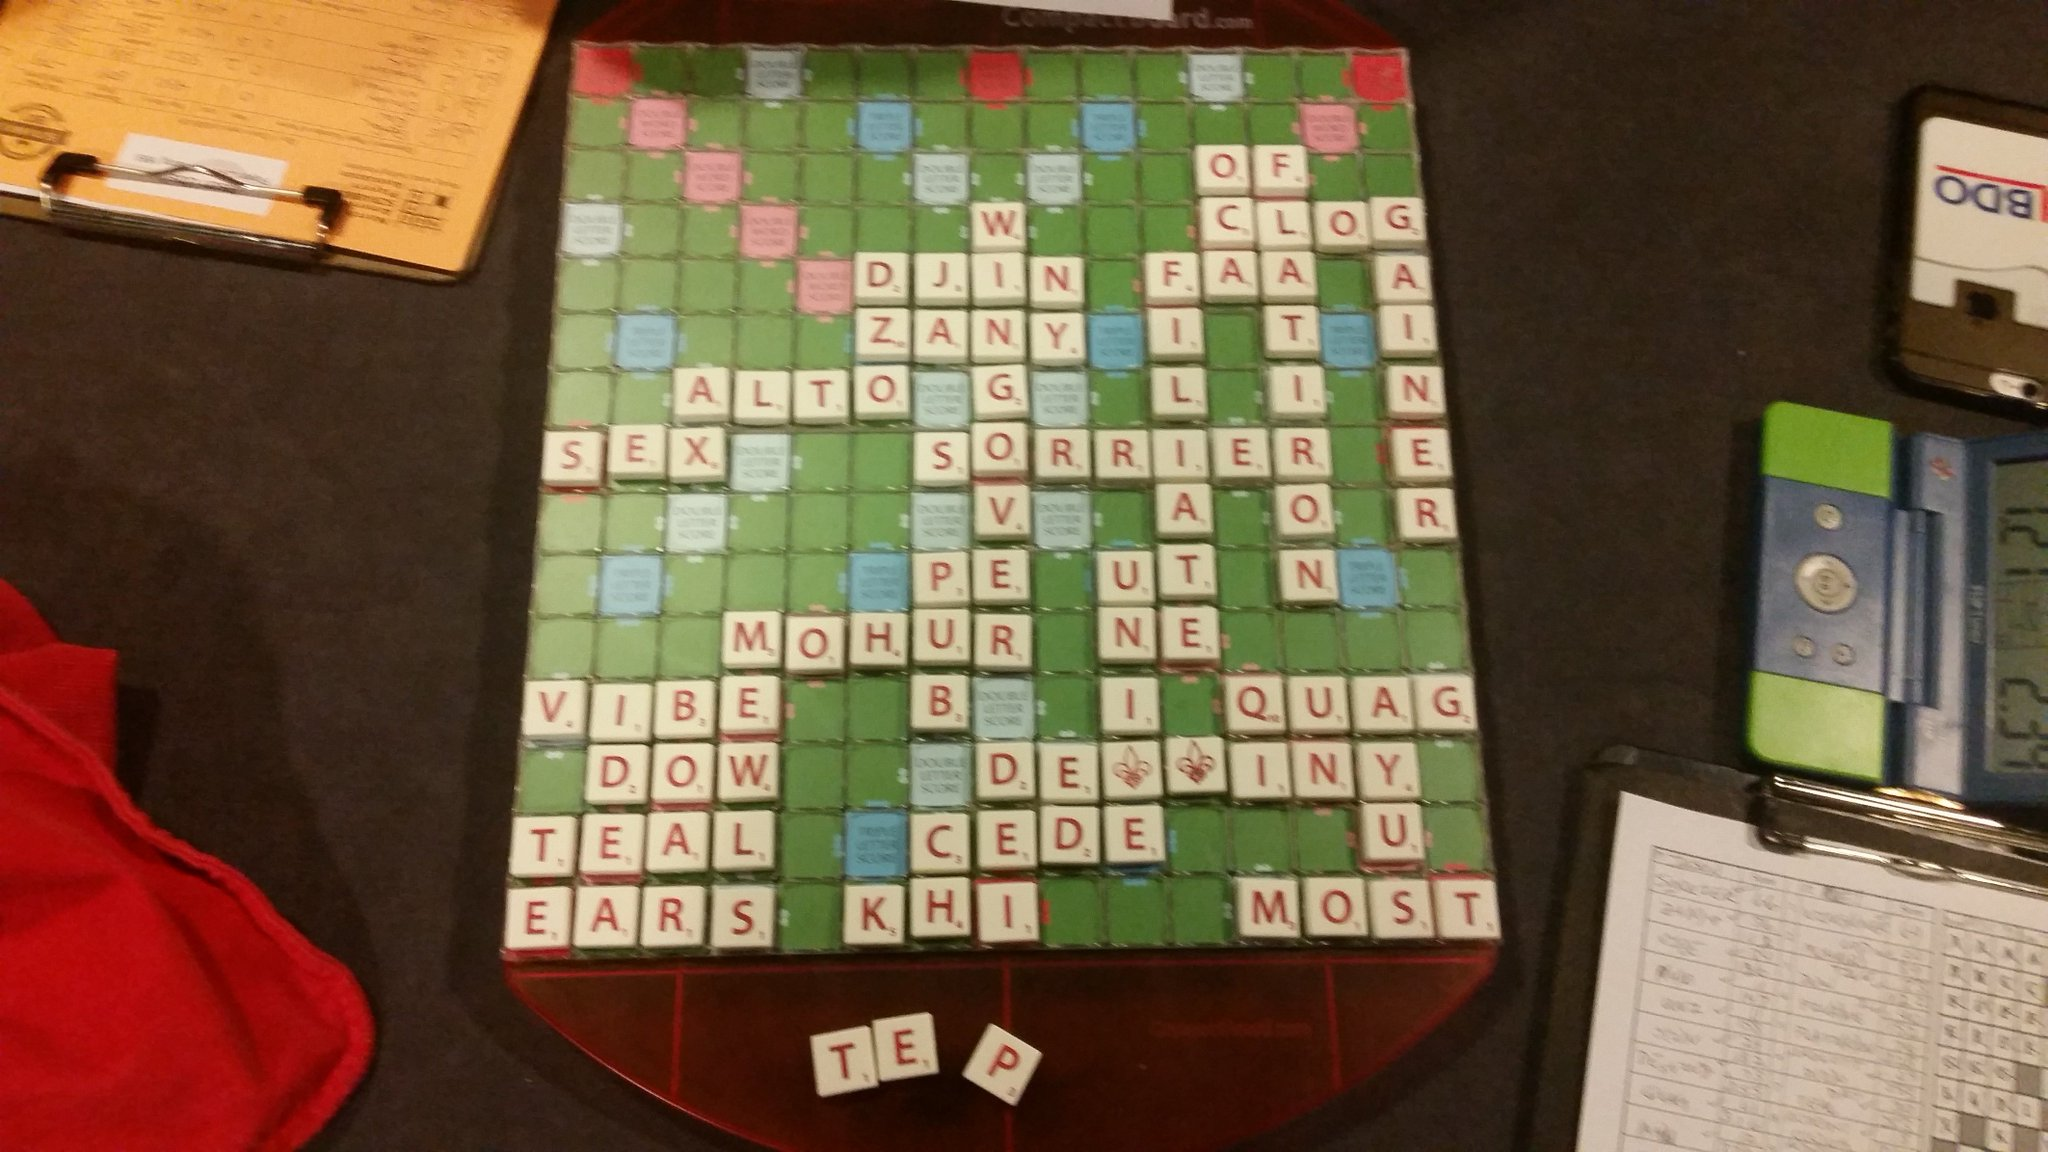 X setup couldn't quite get there and couldn't quite overcome double blank Bingo and q bomb versus ubeika.  4-7.  #scrabble #nasc2017 https://t.co/ptp9U0OgVB